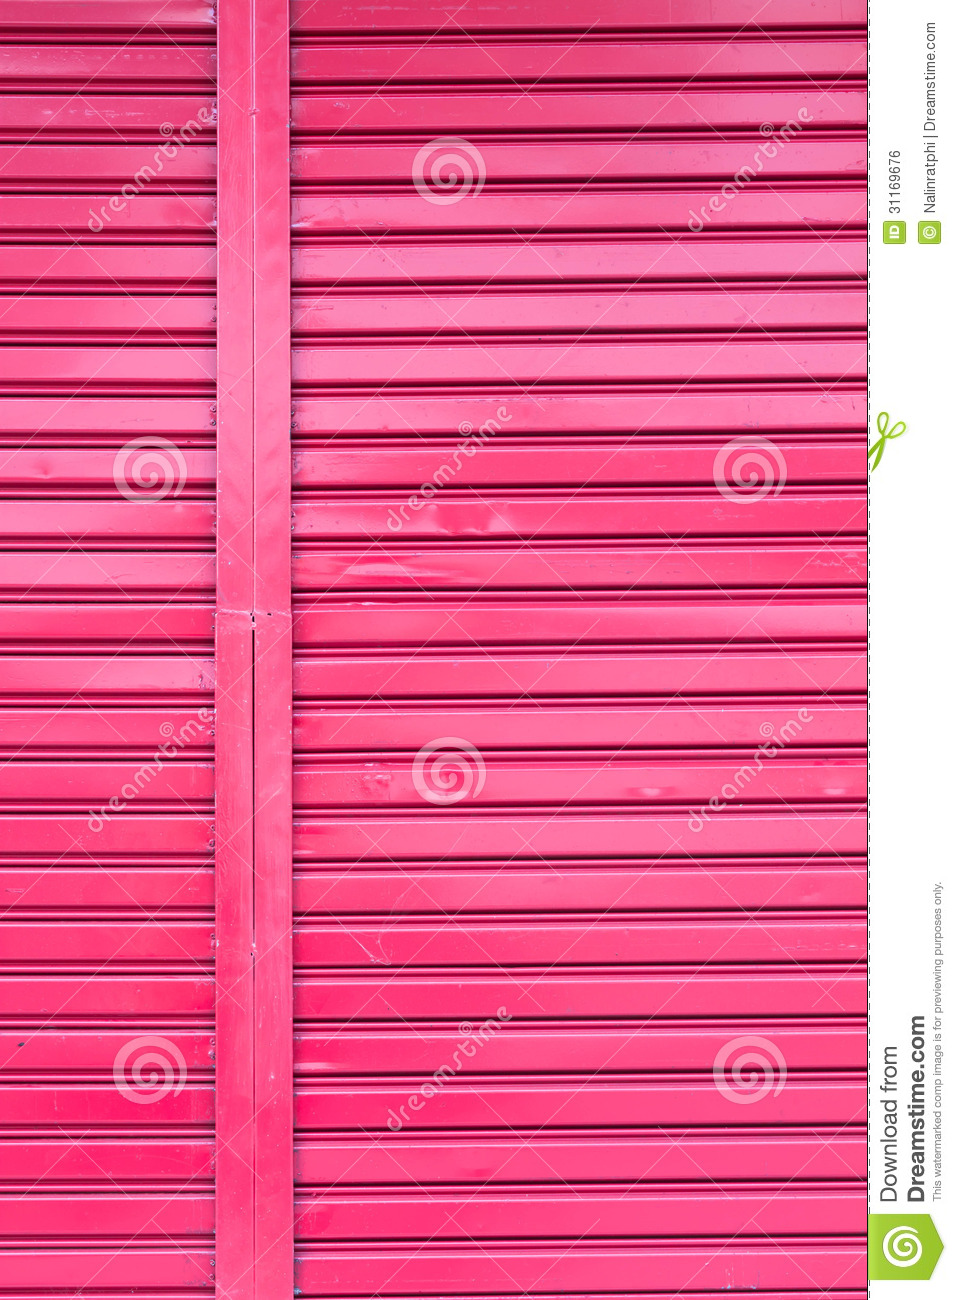 Royalty Free Stock Image: Red roller metal entry door 957 x 1300 · 425 kB · jpeg